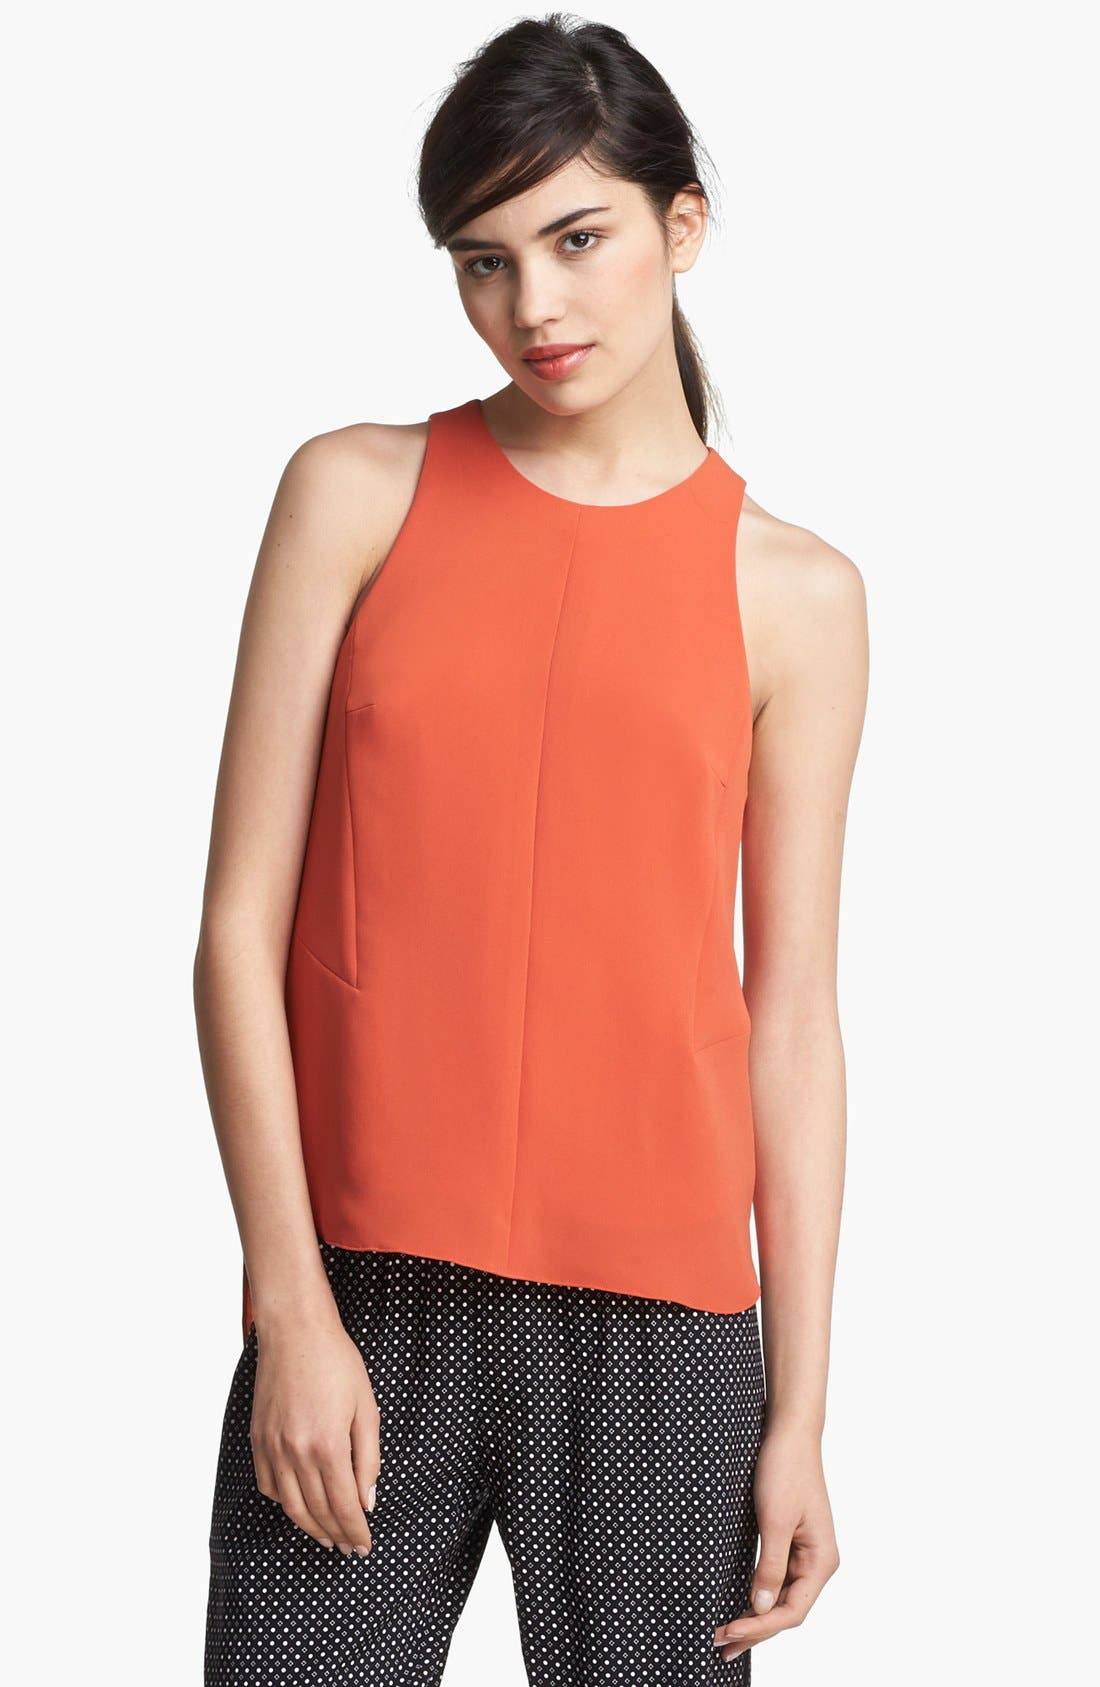 Alternate Image 1 Selected - rag & bone 'Adeline' High/Low Racerback Top